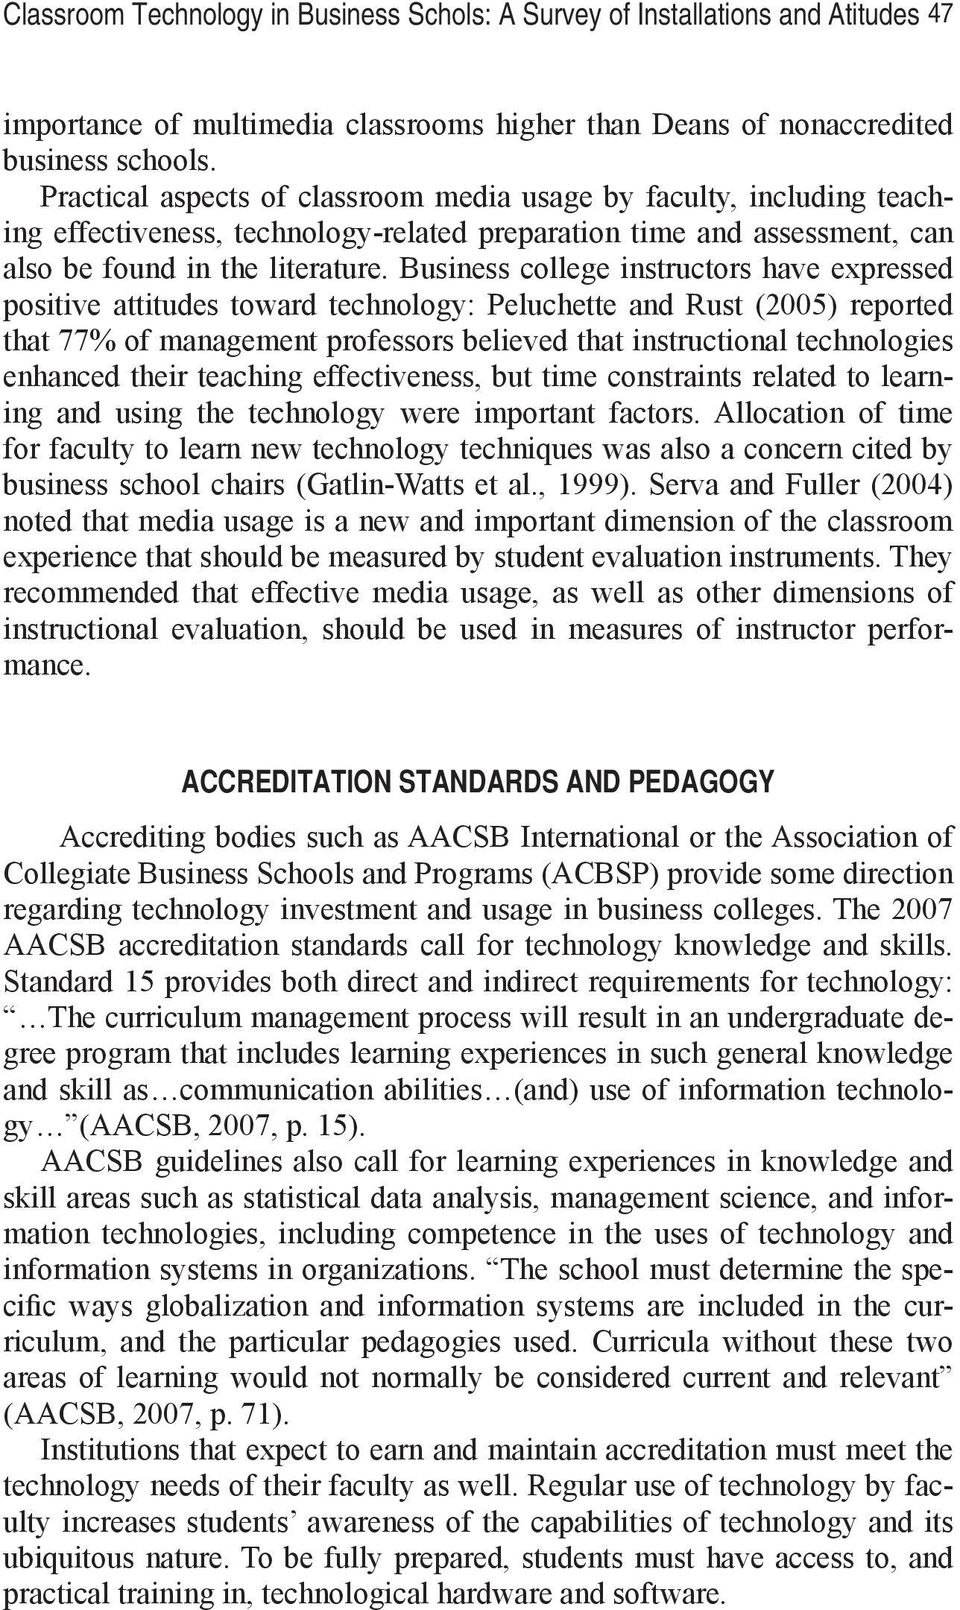 Business college instructors have expressed positive attitudes toward technology: Peluchette and Rust (2005) reported that 77% of management professors believed that instructional technologies